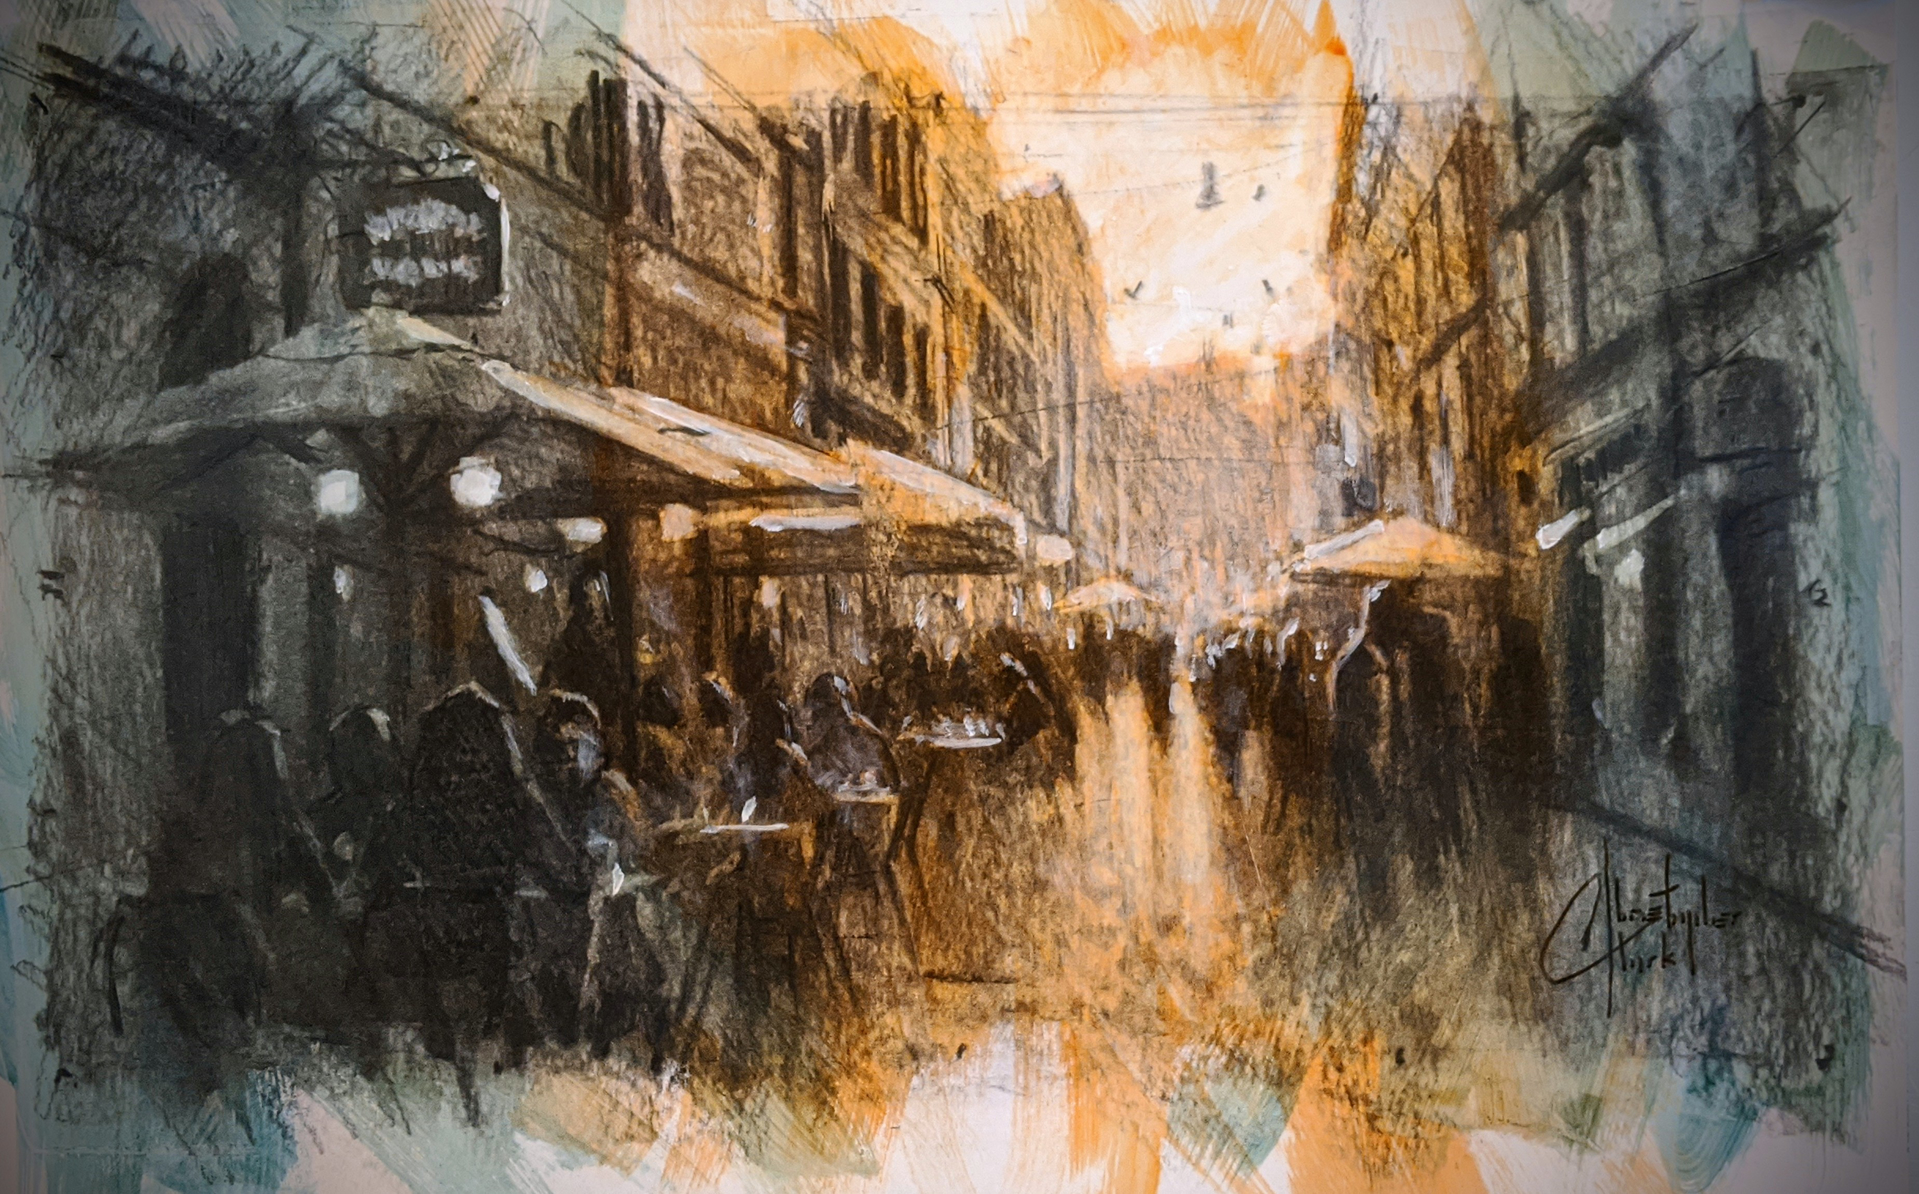 Sketch: Rome, Italy by Christopher Clark